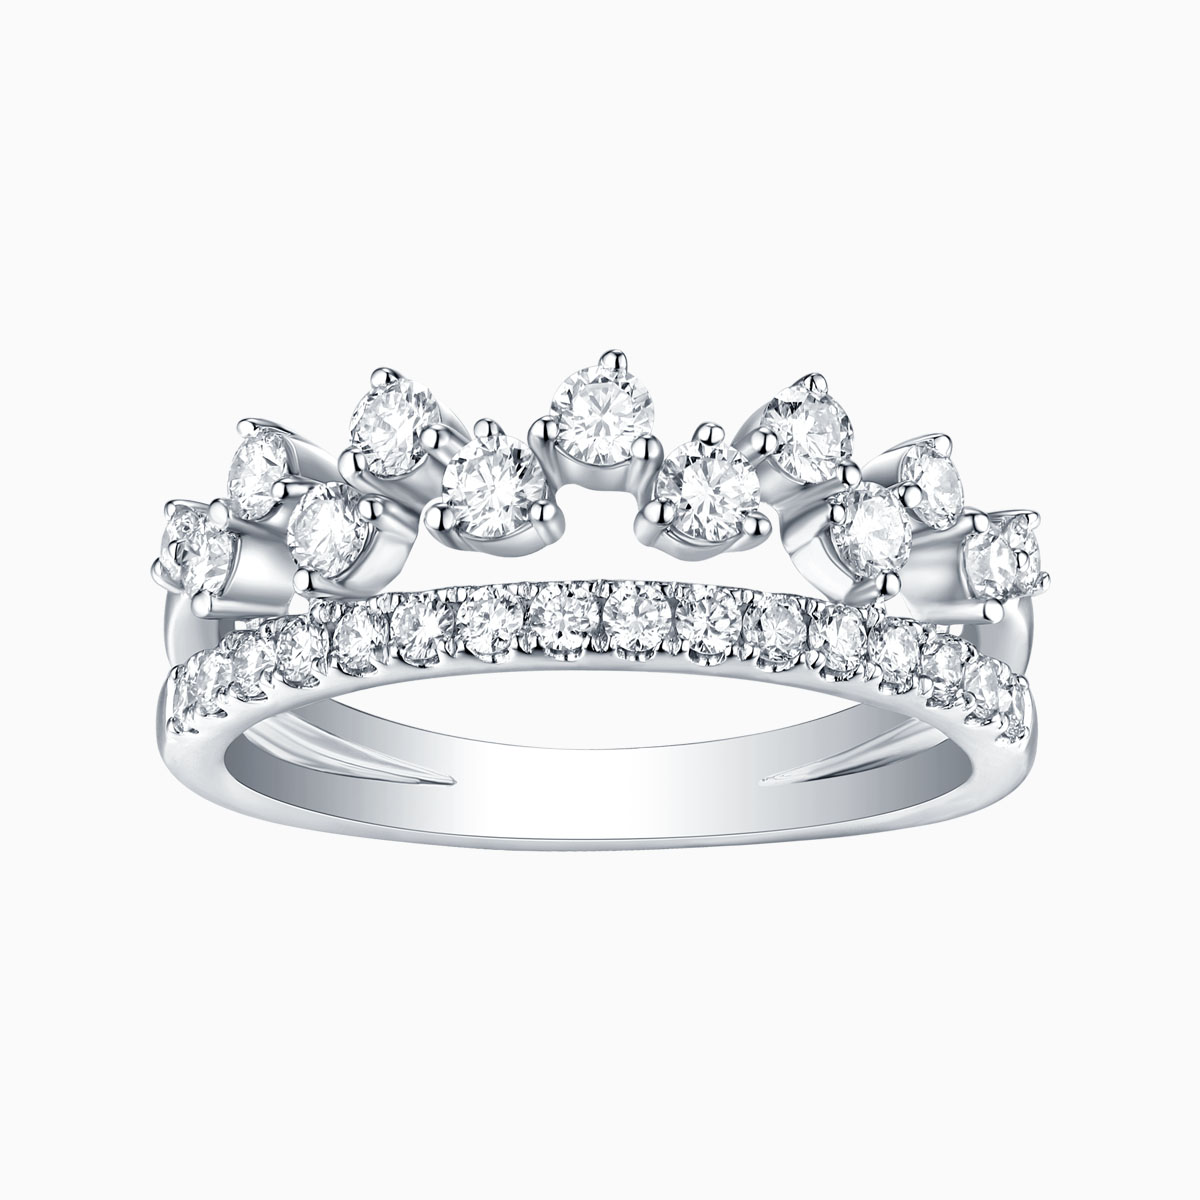 R26190WHT- 14K White Gold Diamond Ring, 0.80 TCW